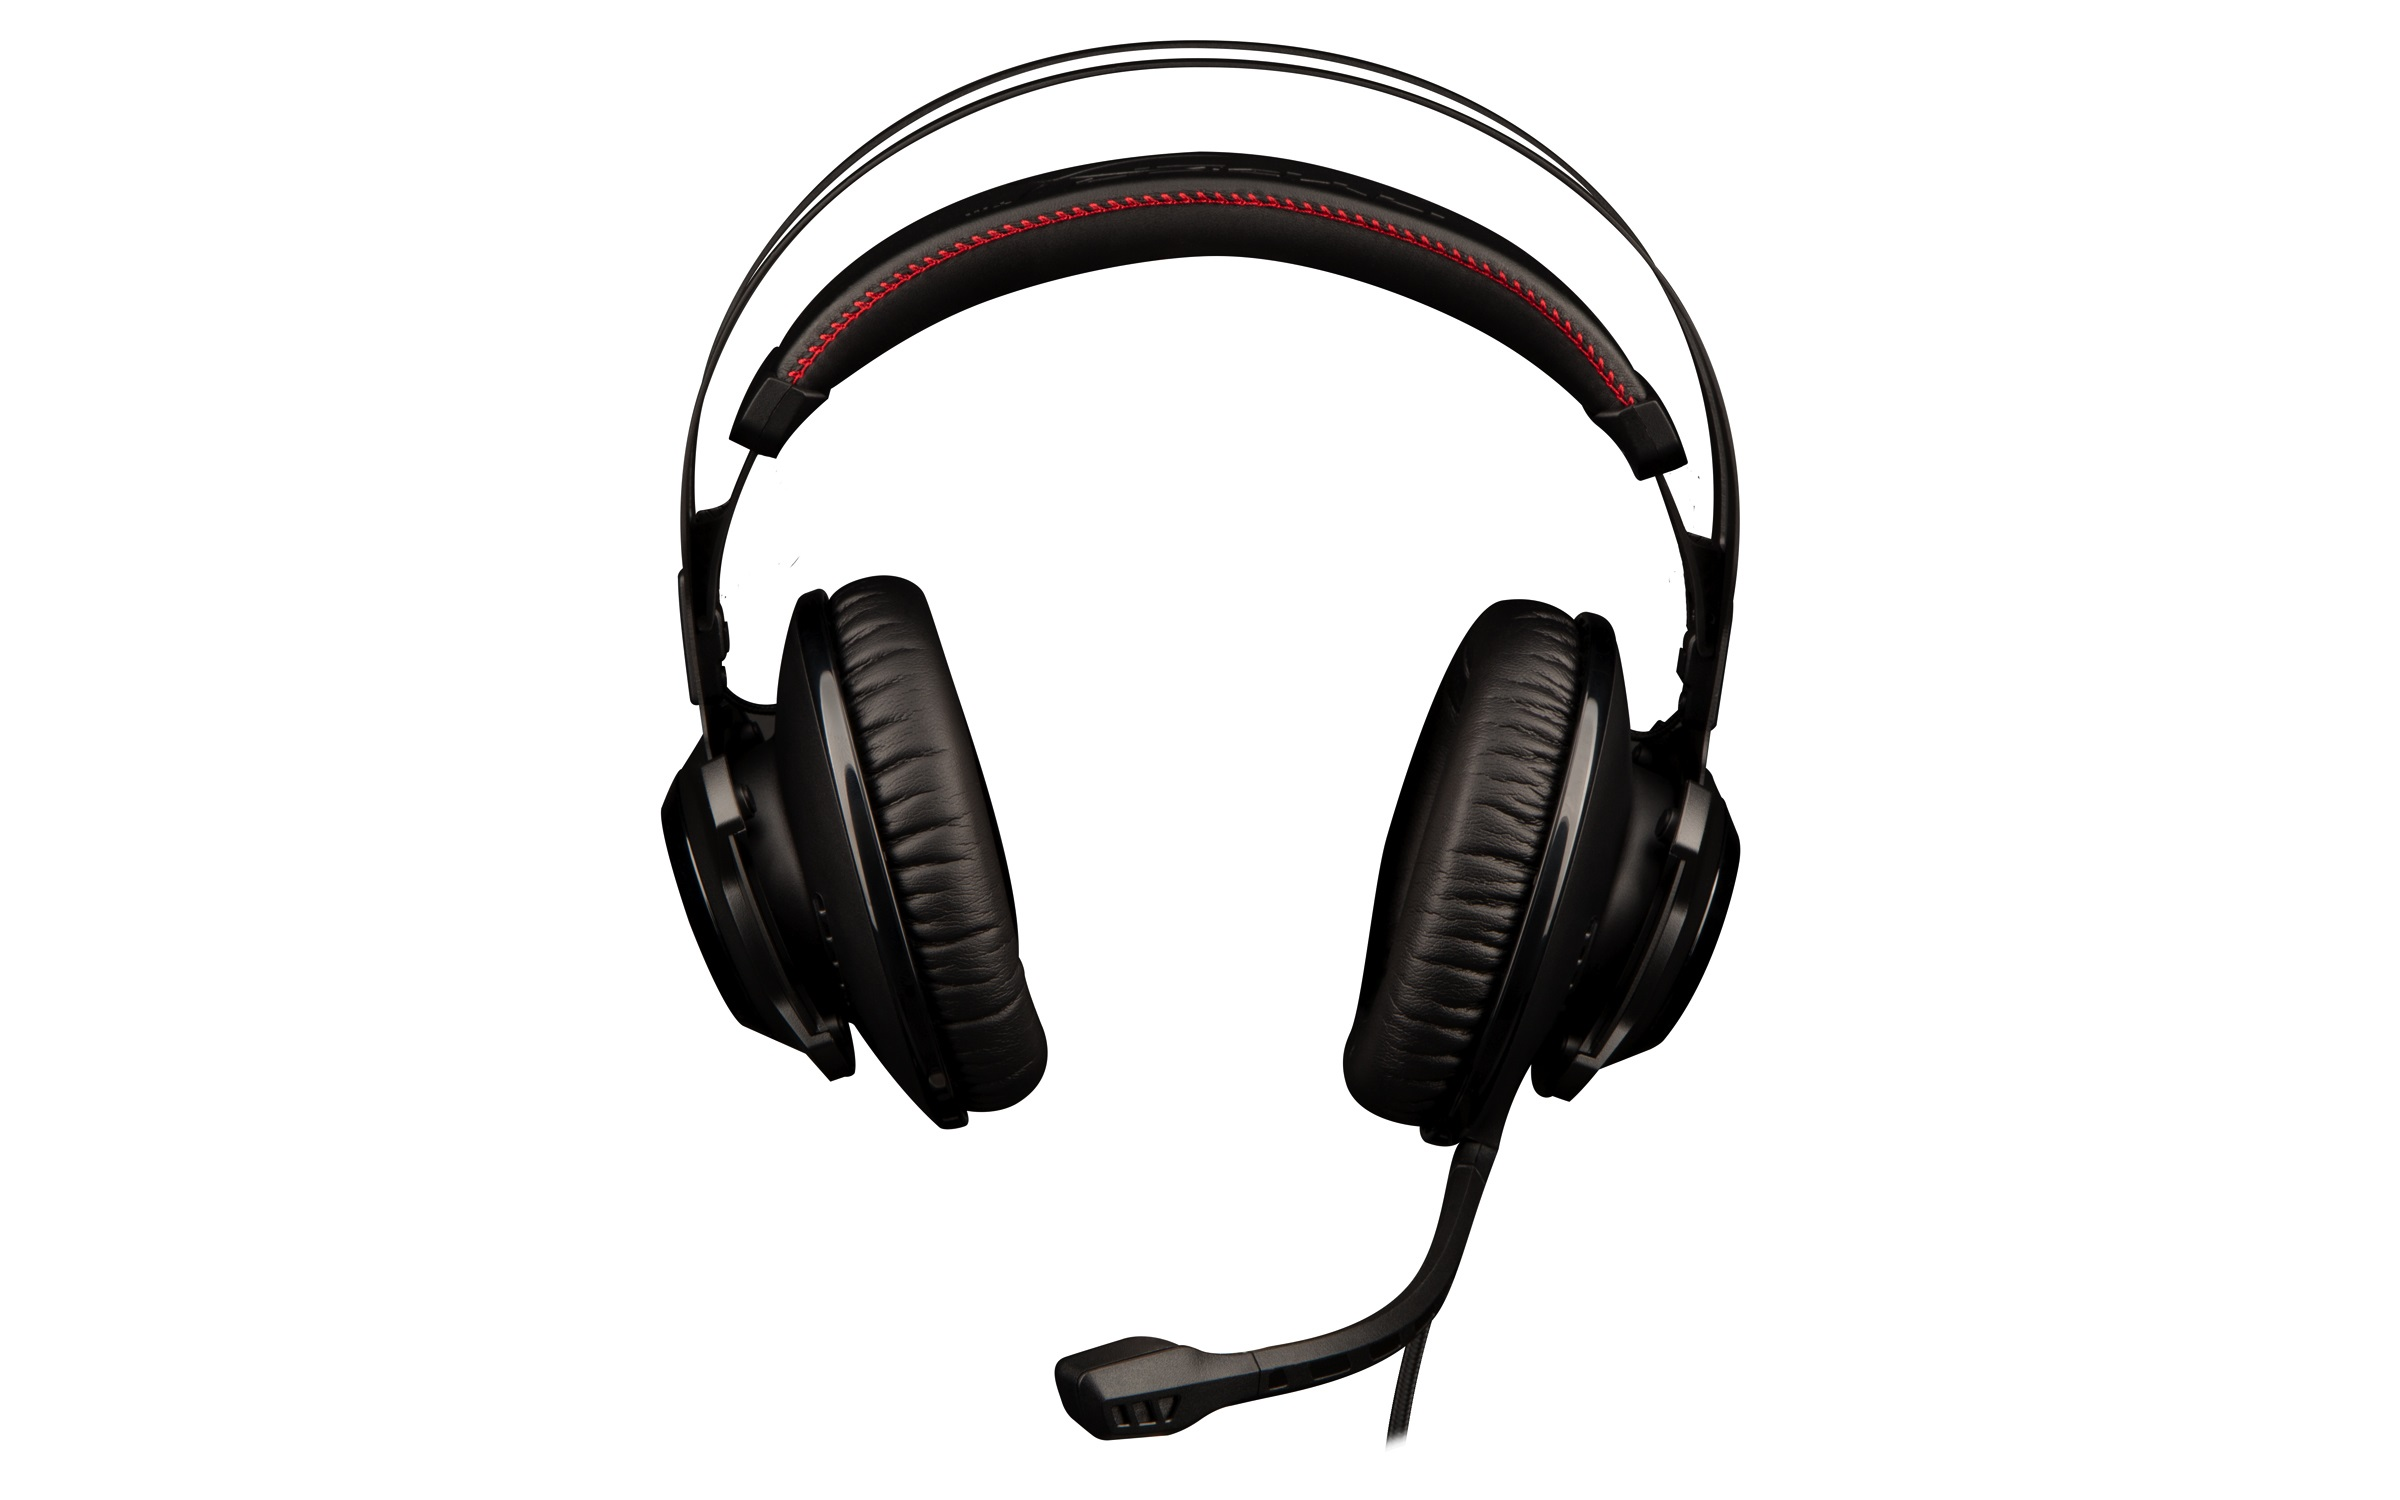 HyperX Cloud Revolver Stereo Headset